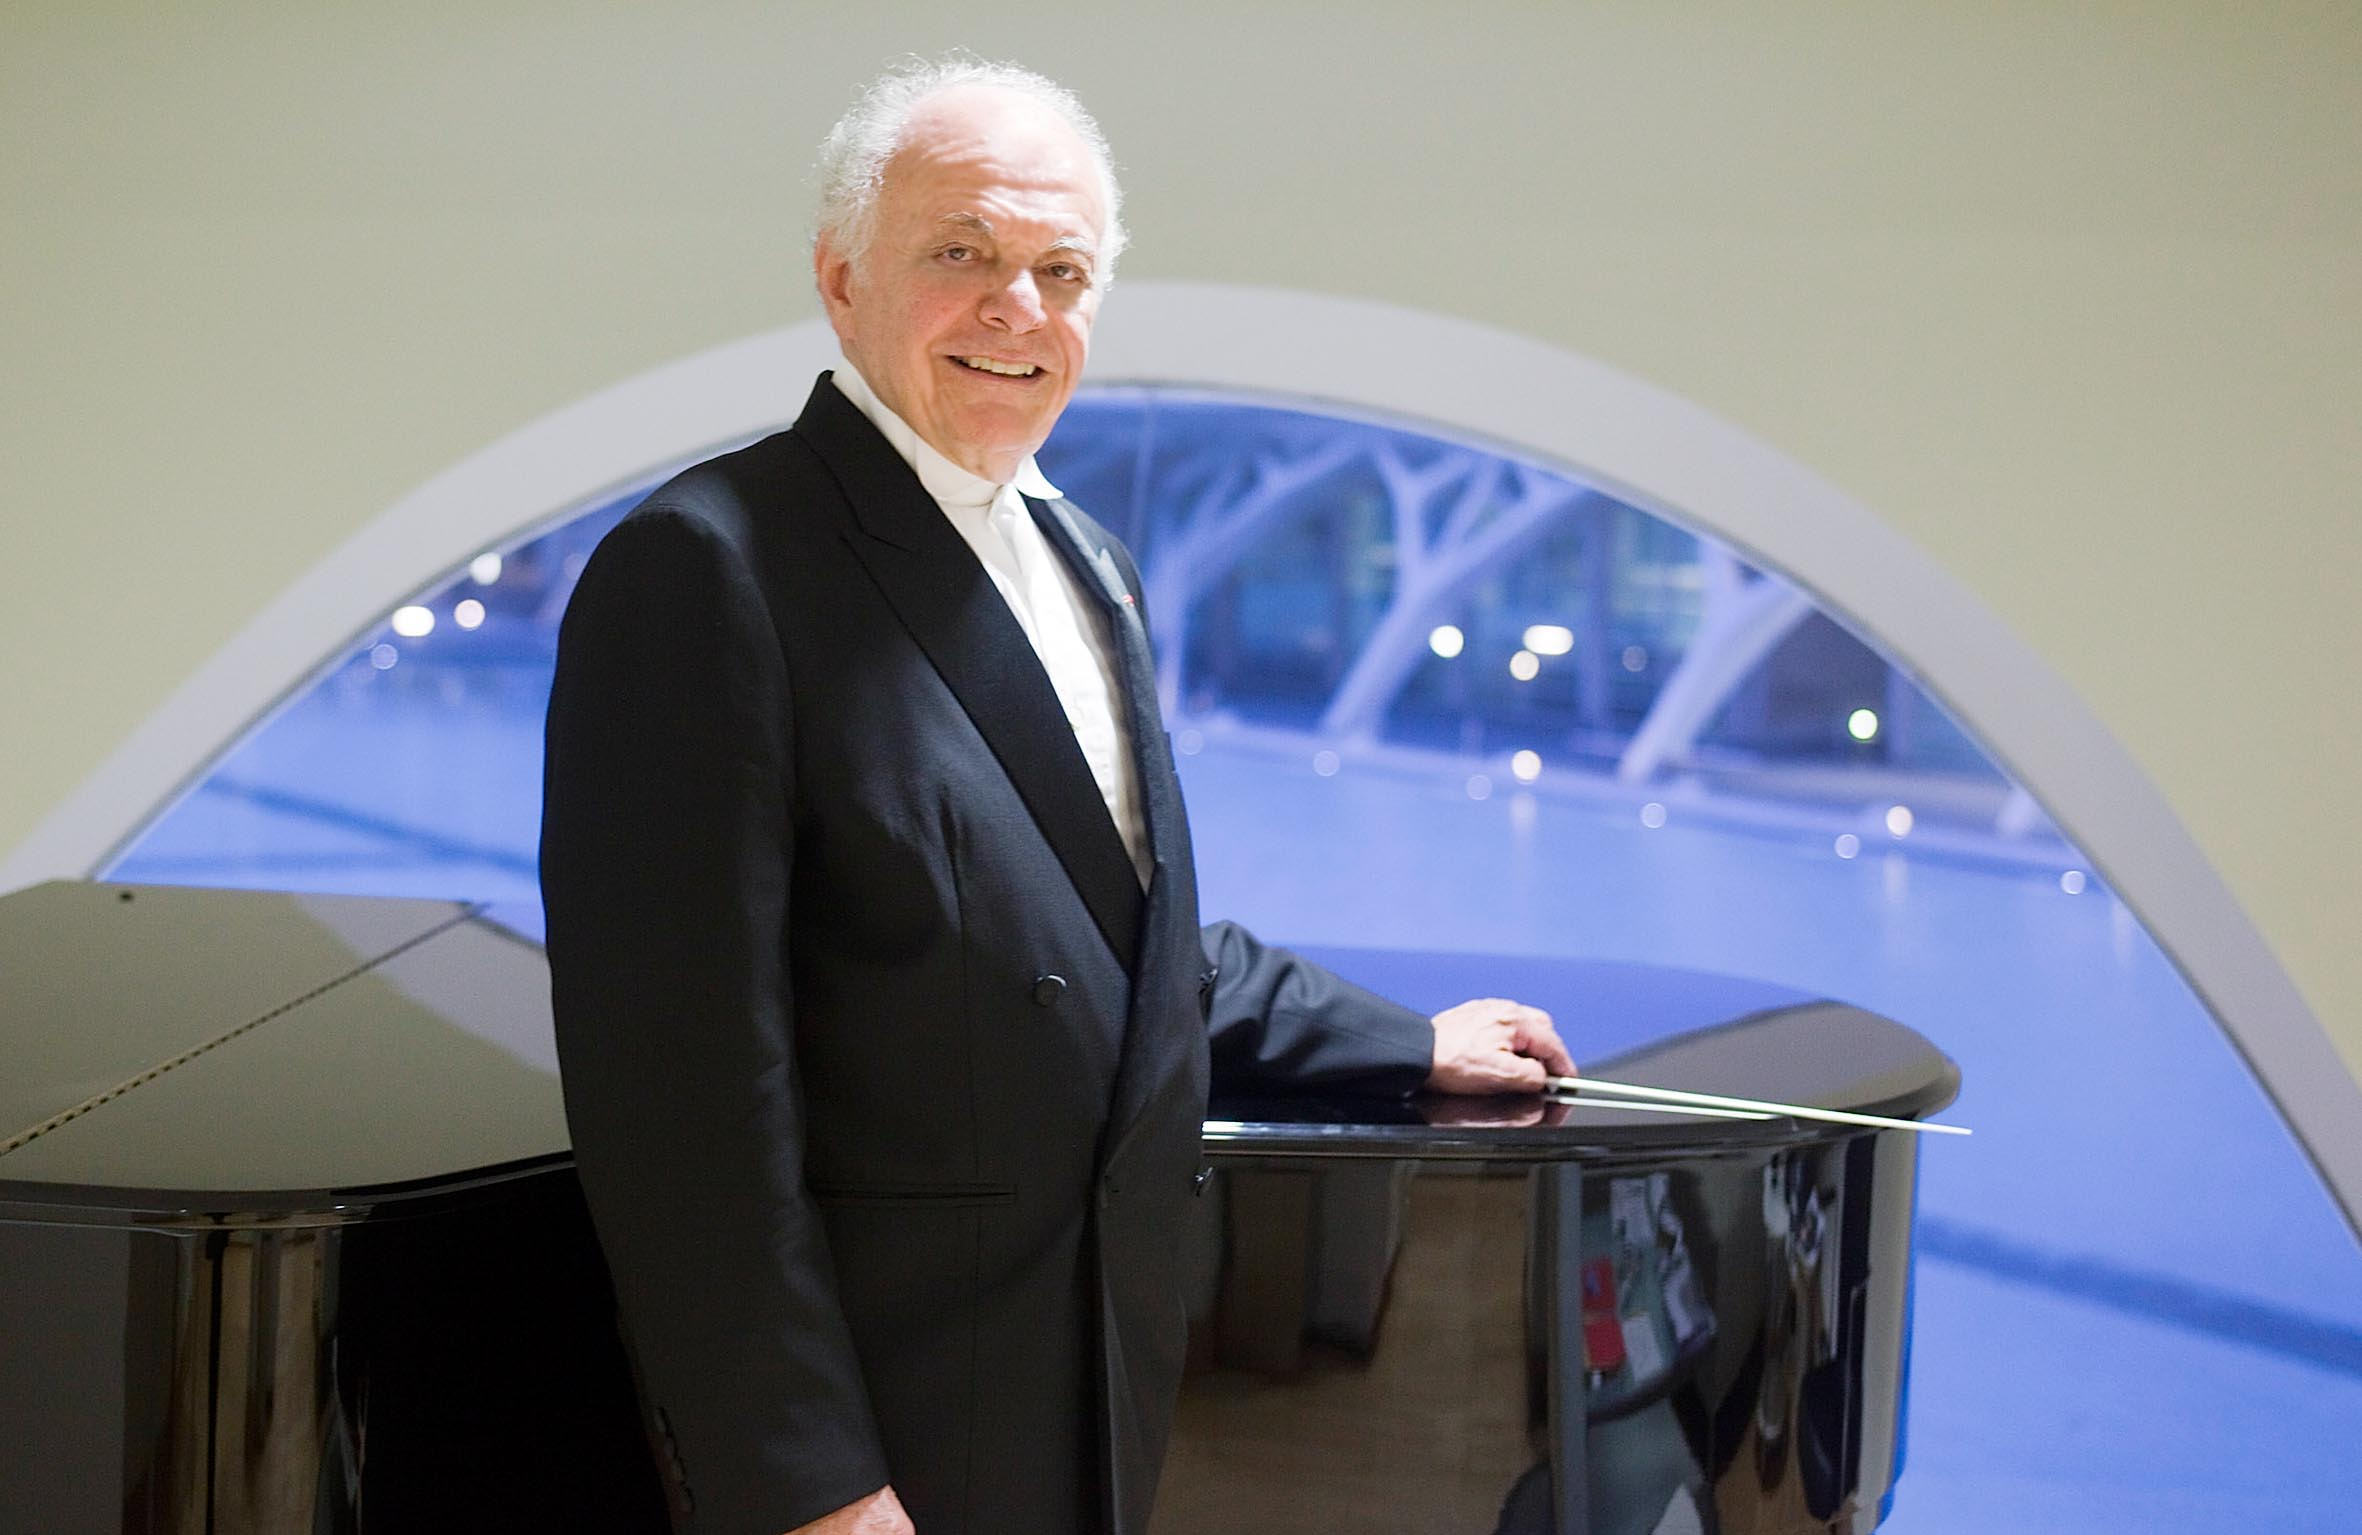 Interview with Lorin Maazel: 50 years conducting the Philharmonia